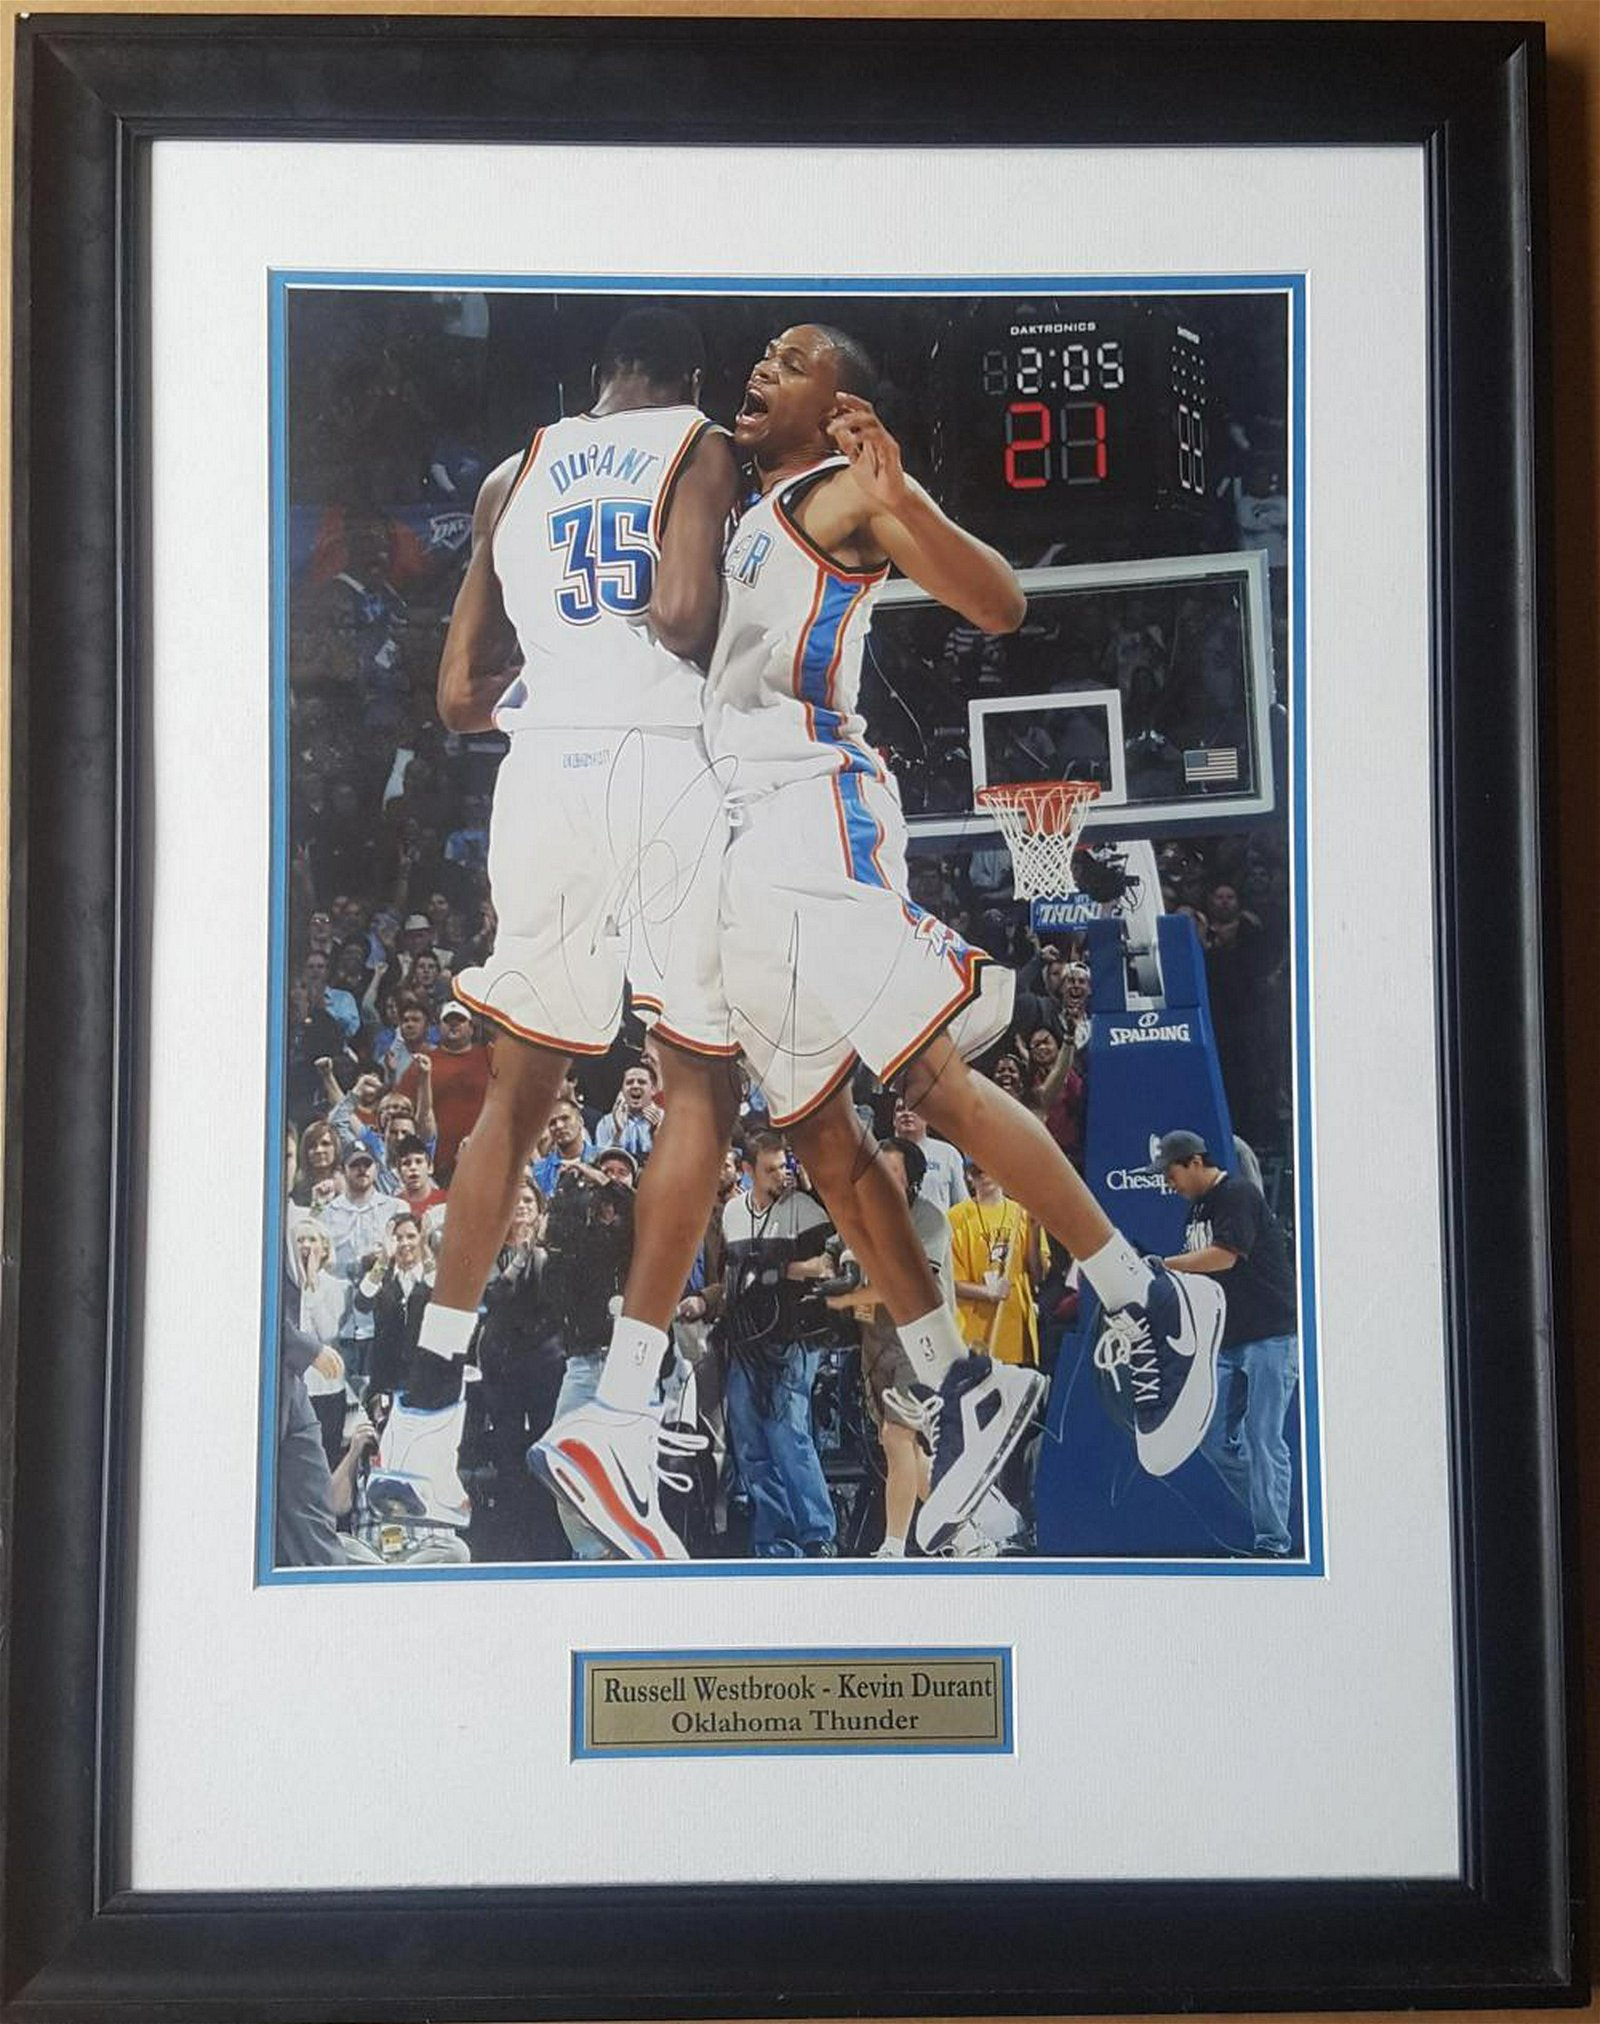 Russell Westbrook, Kevin Durant Autographed 8x10 framed